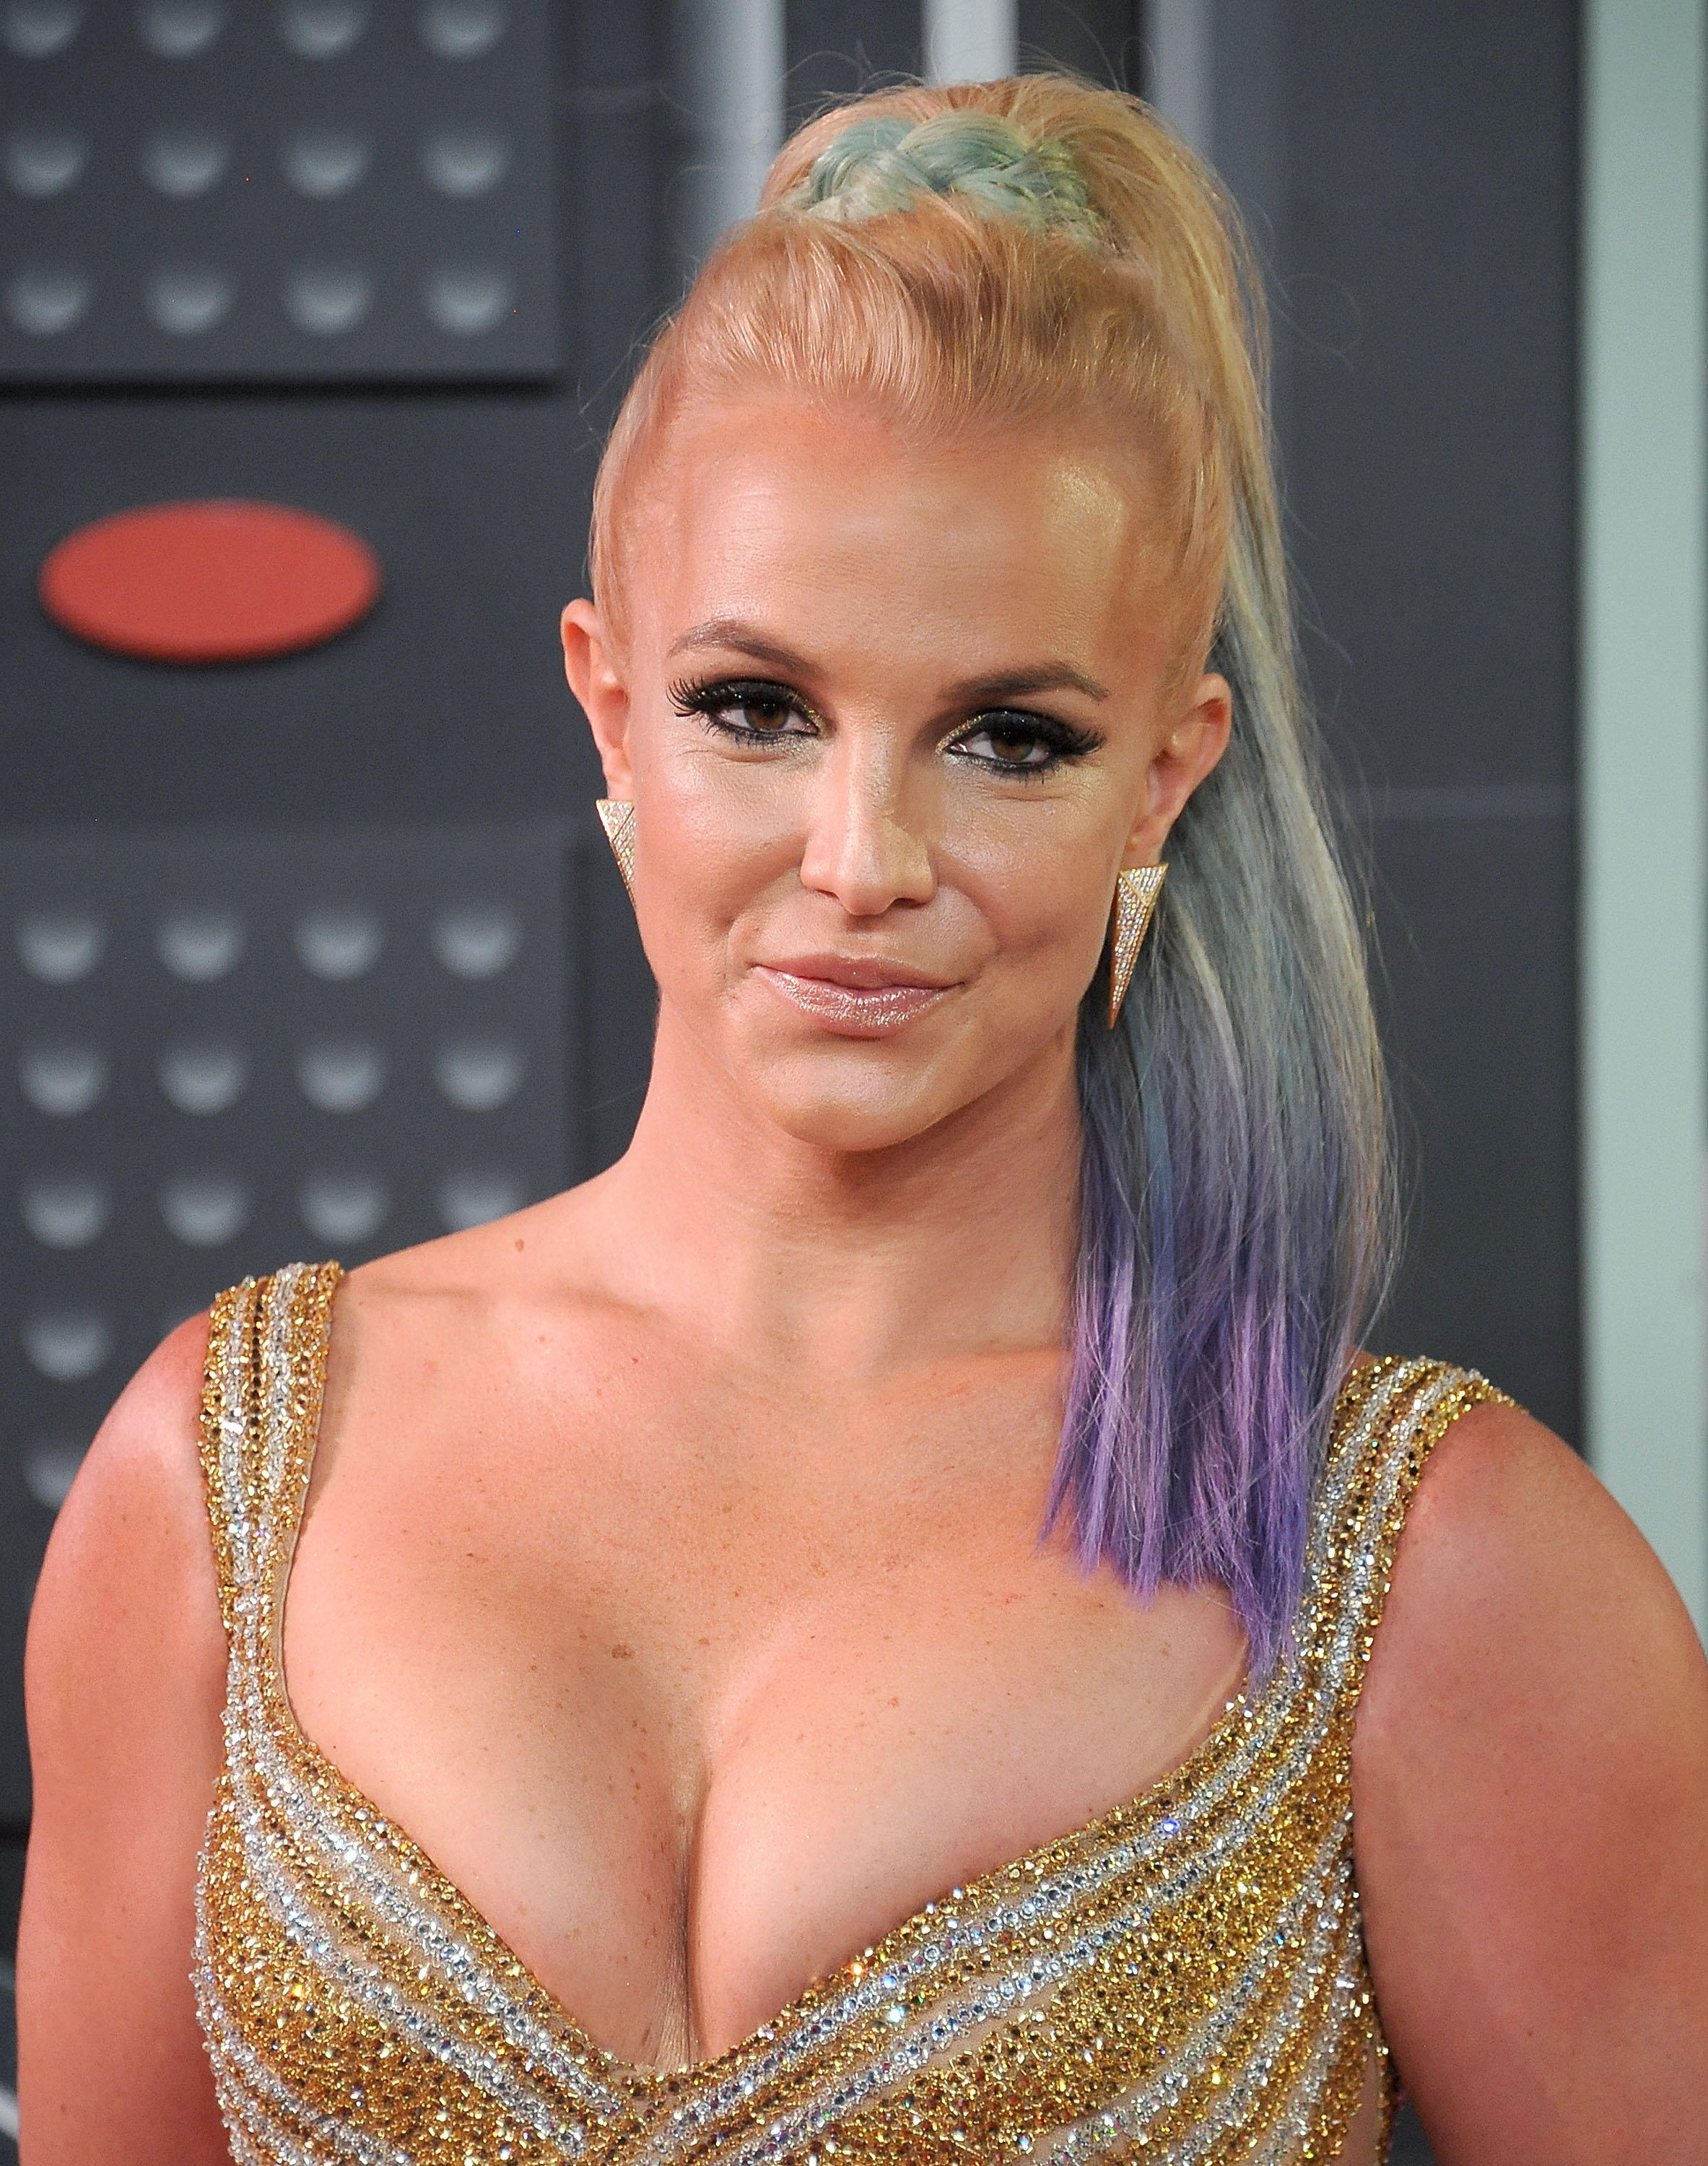 """Britney Spears Shows Off the Spray Tan That Left Her Looking """"a Little Like an Oompa Loompa"""""""